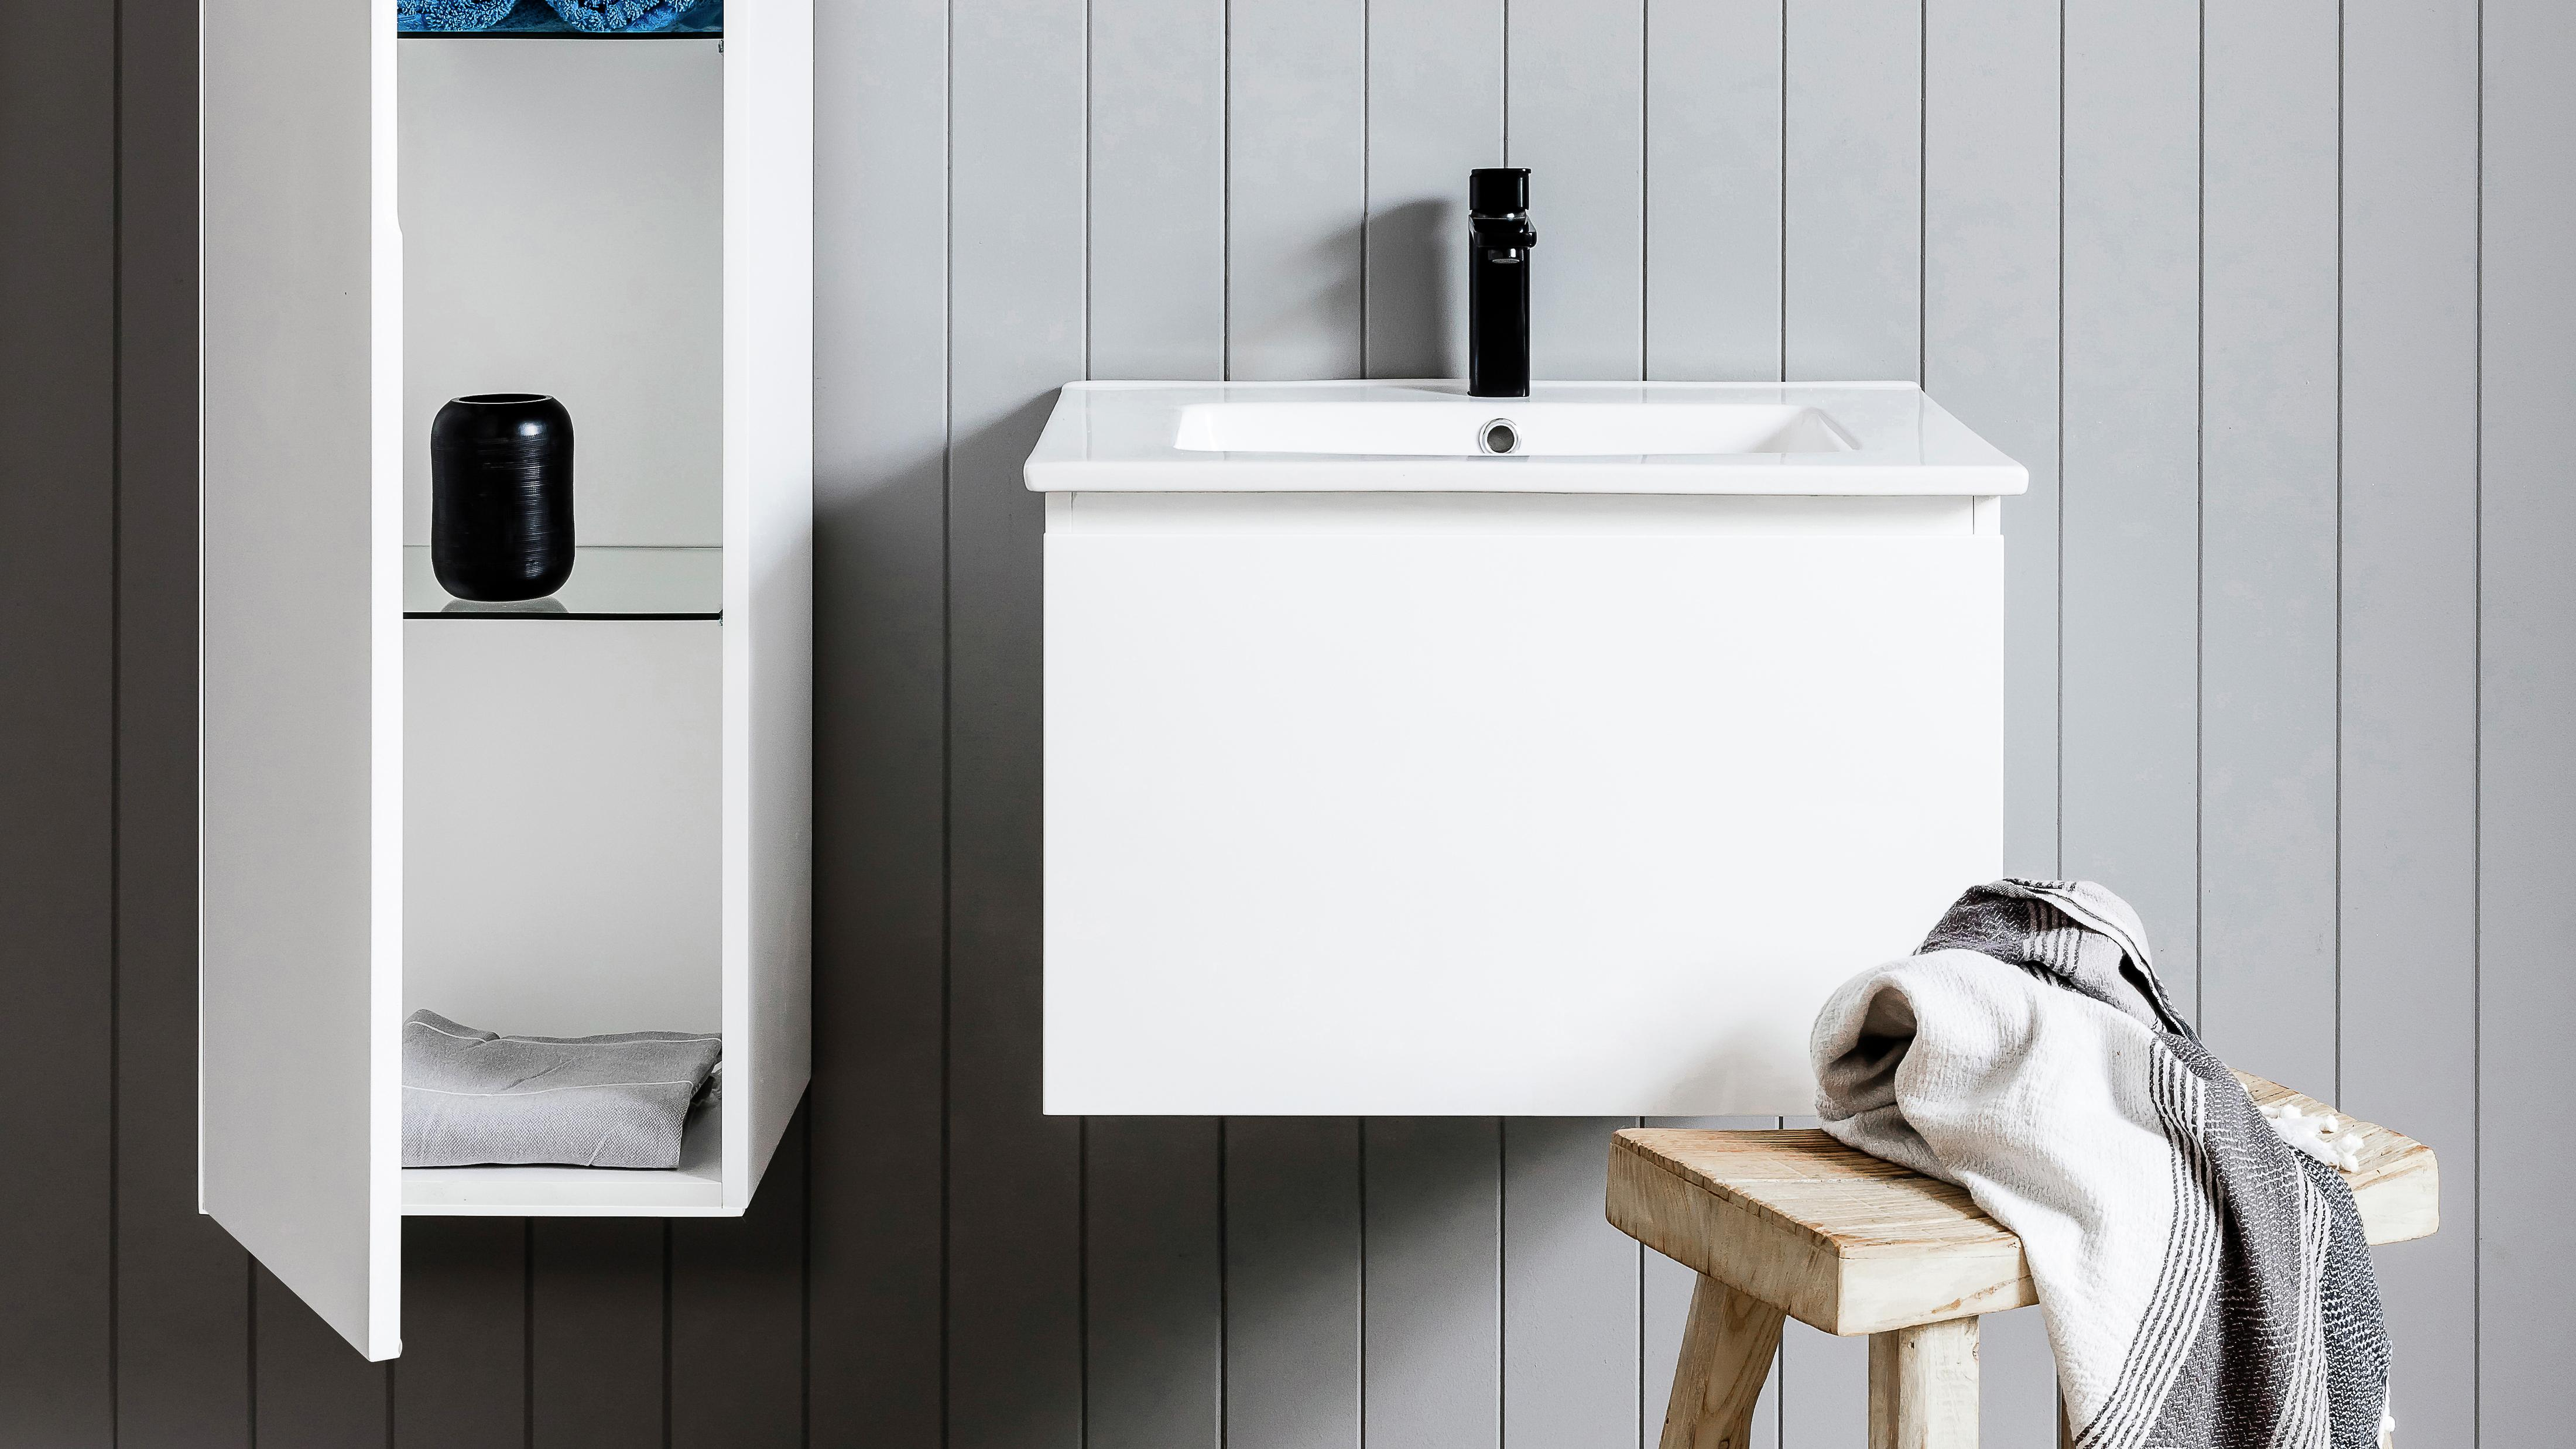 Bathroom with wall-attached cabinet and floating vanity.